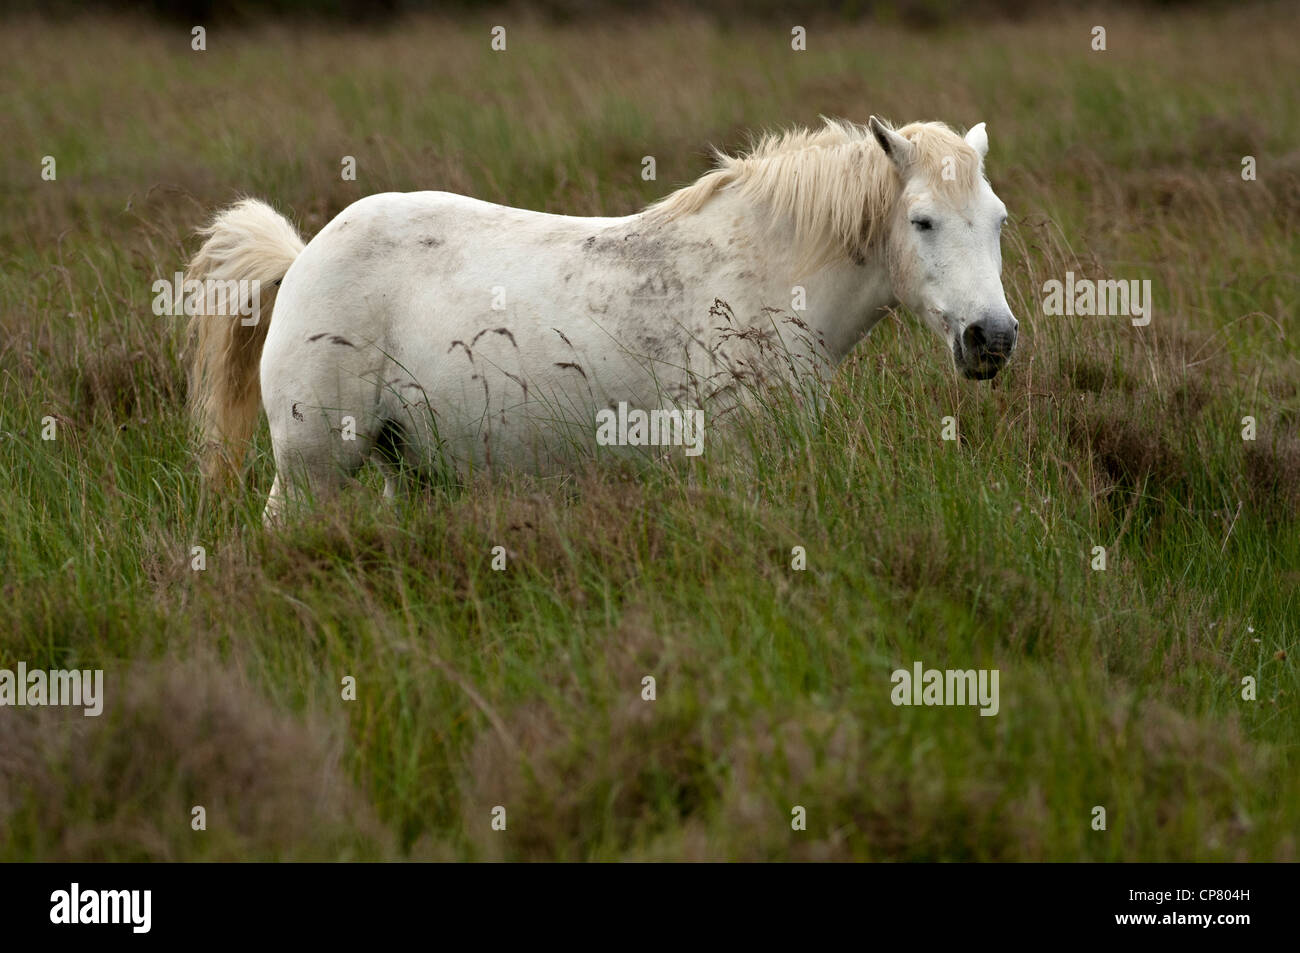 Semi-wild Camargue horse in a wetland, Camargue, France - Stock Image